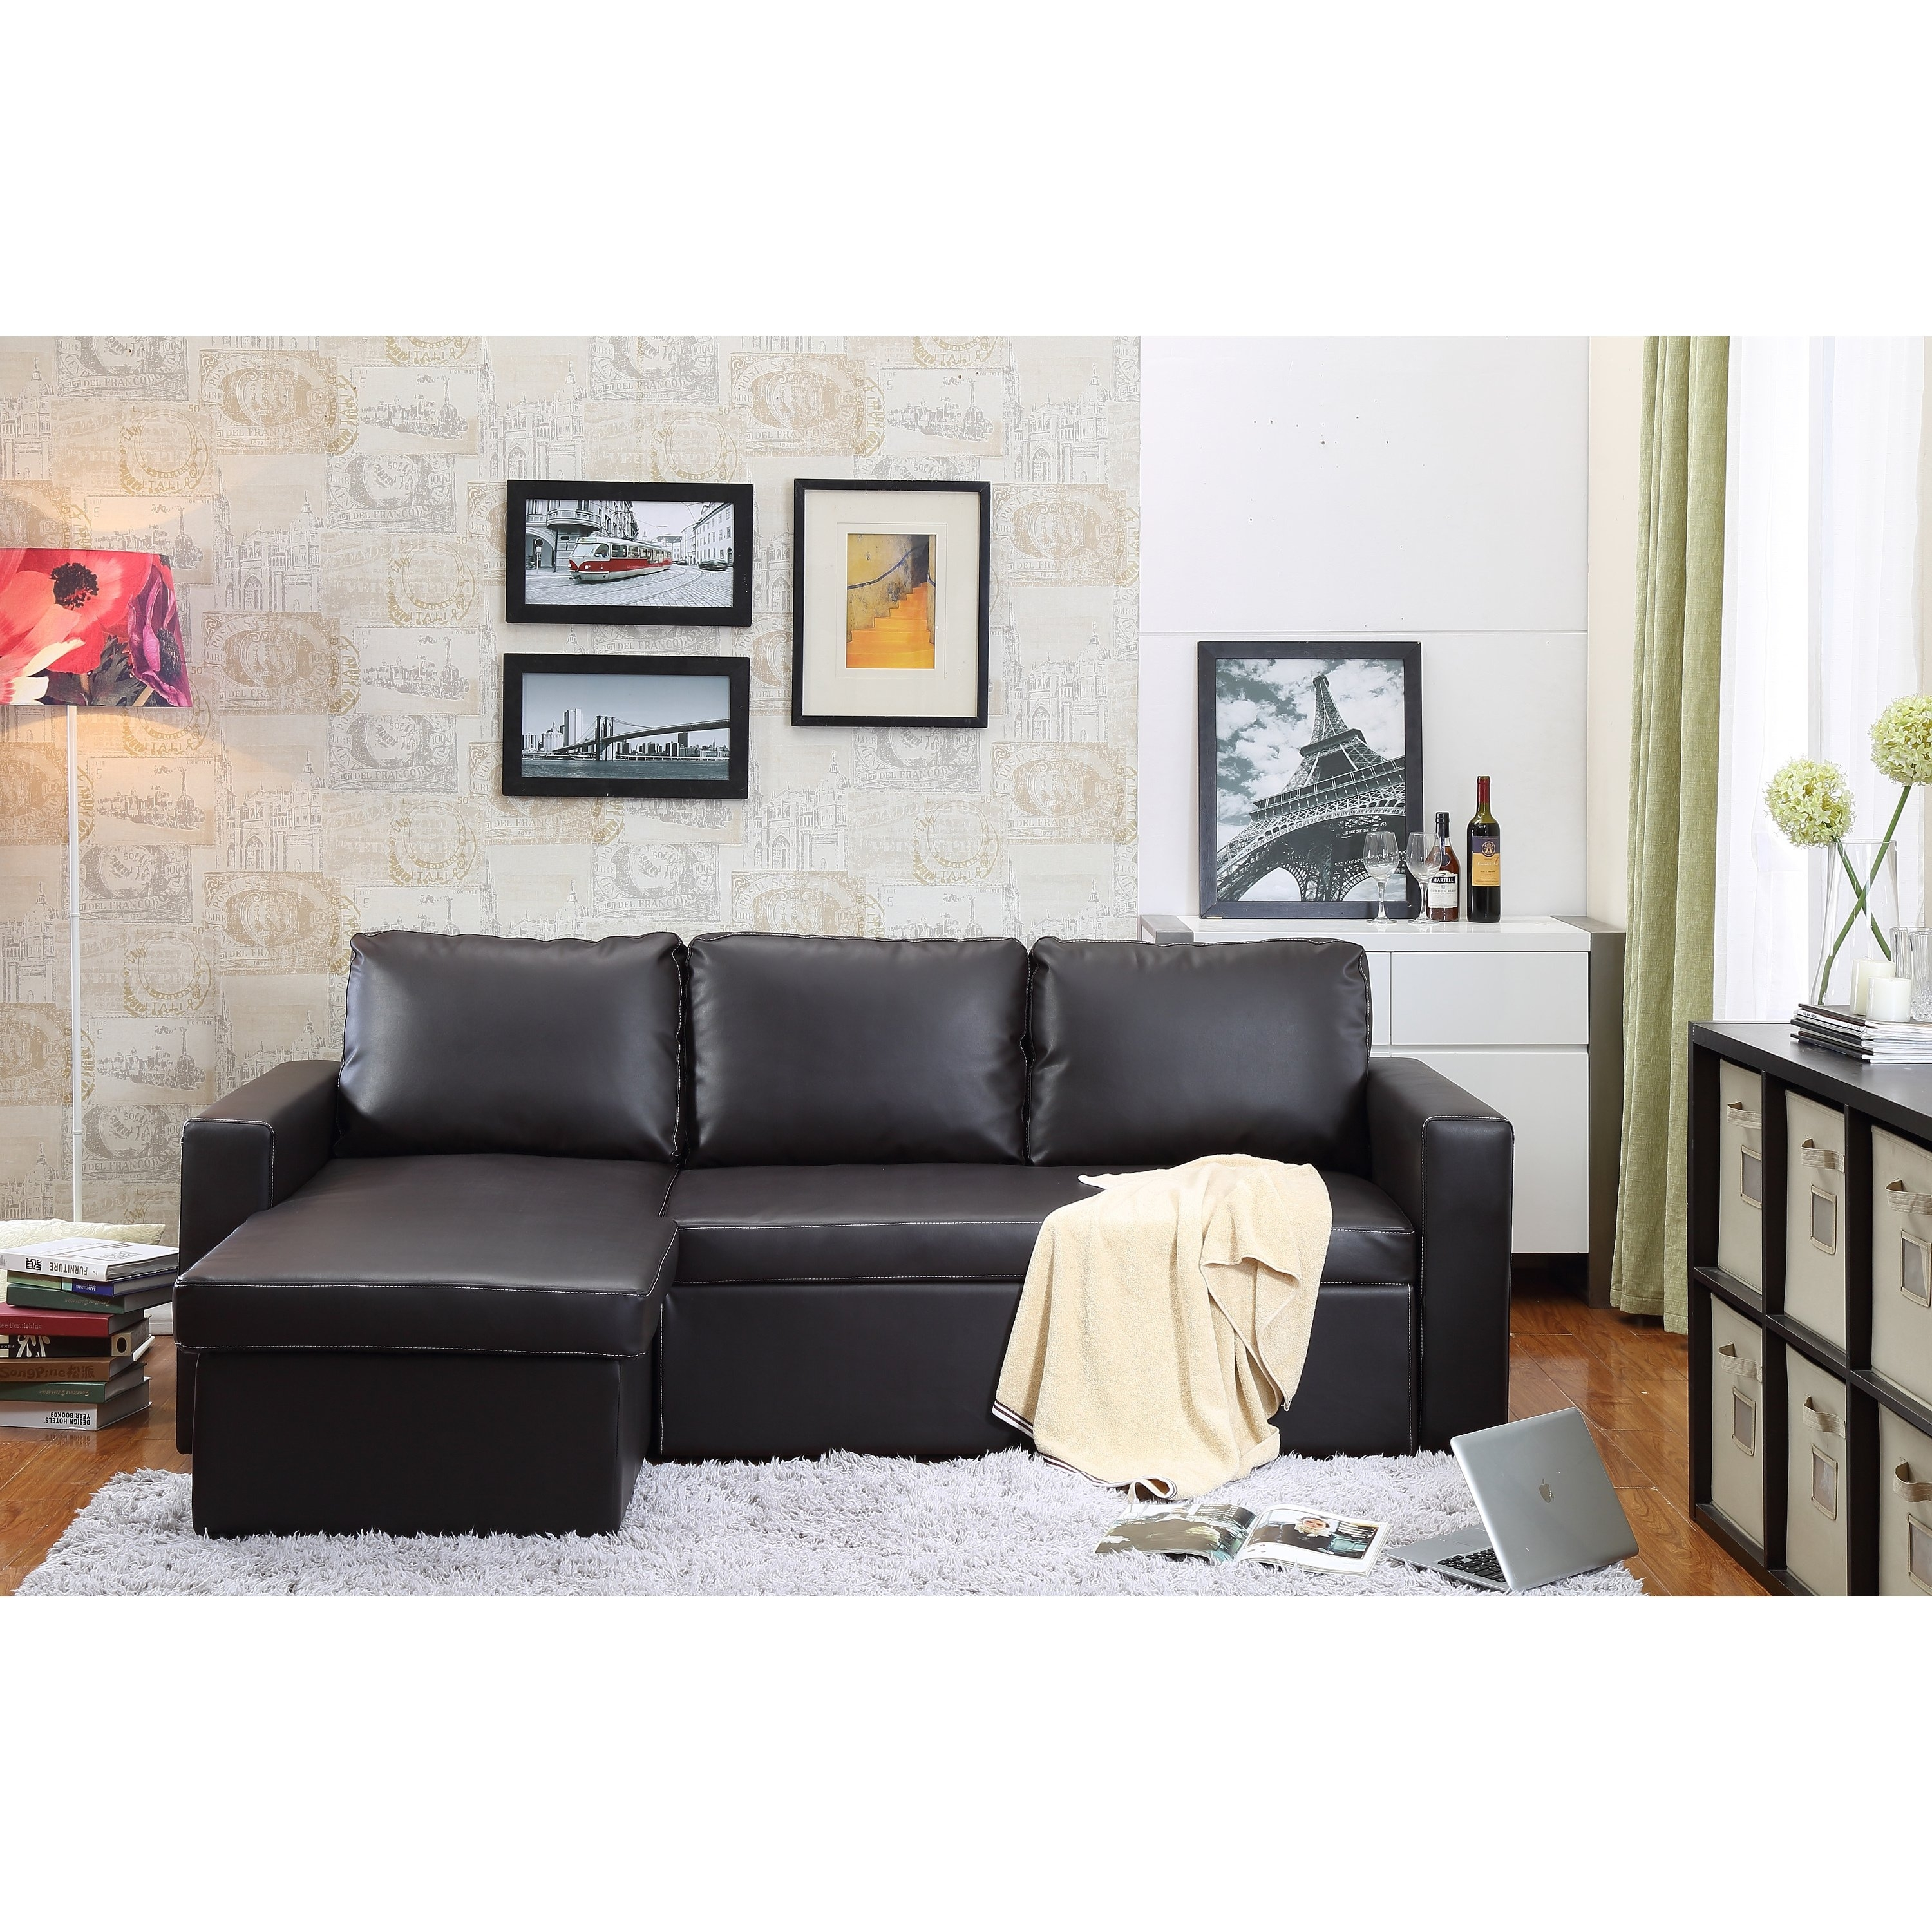 Shop The Hom Georgetown 2 Piece Brown Bi Cast Leather Sectional Sofa Regarding Nico Grey Sectionals With Left Facing Storage Chaise (View 24 of 25)